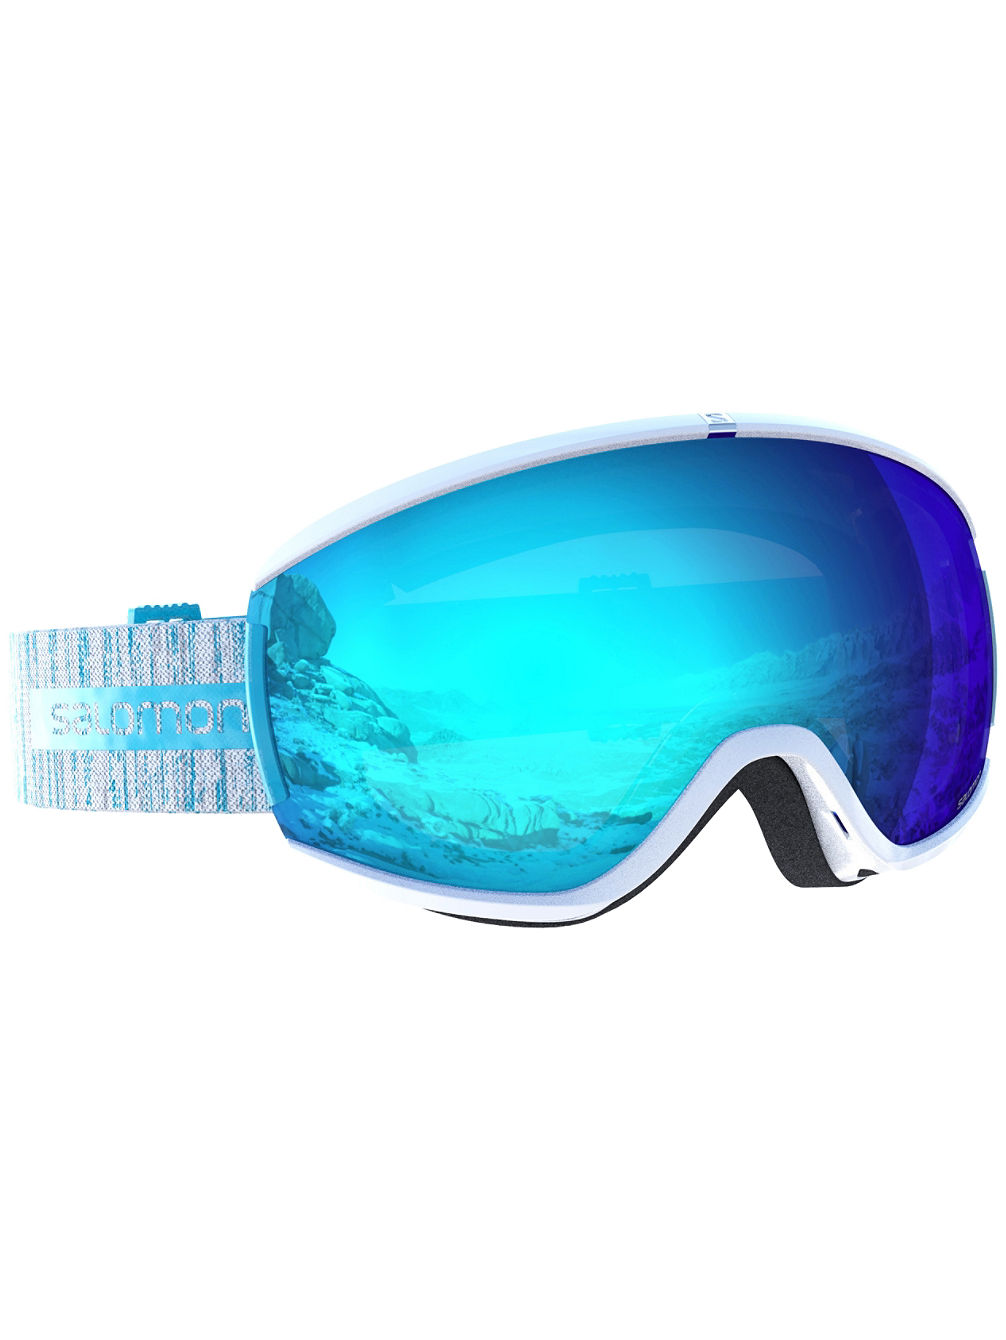 Ivy White Goggle